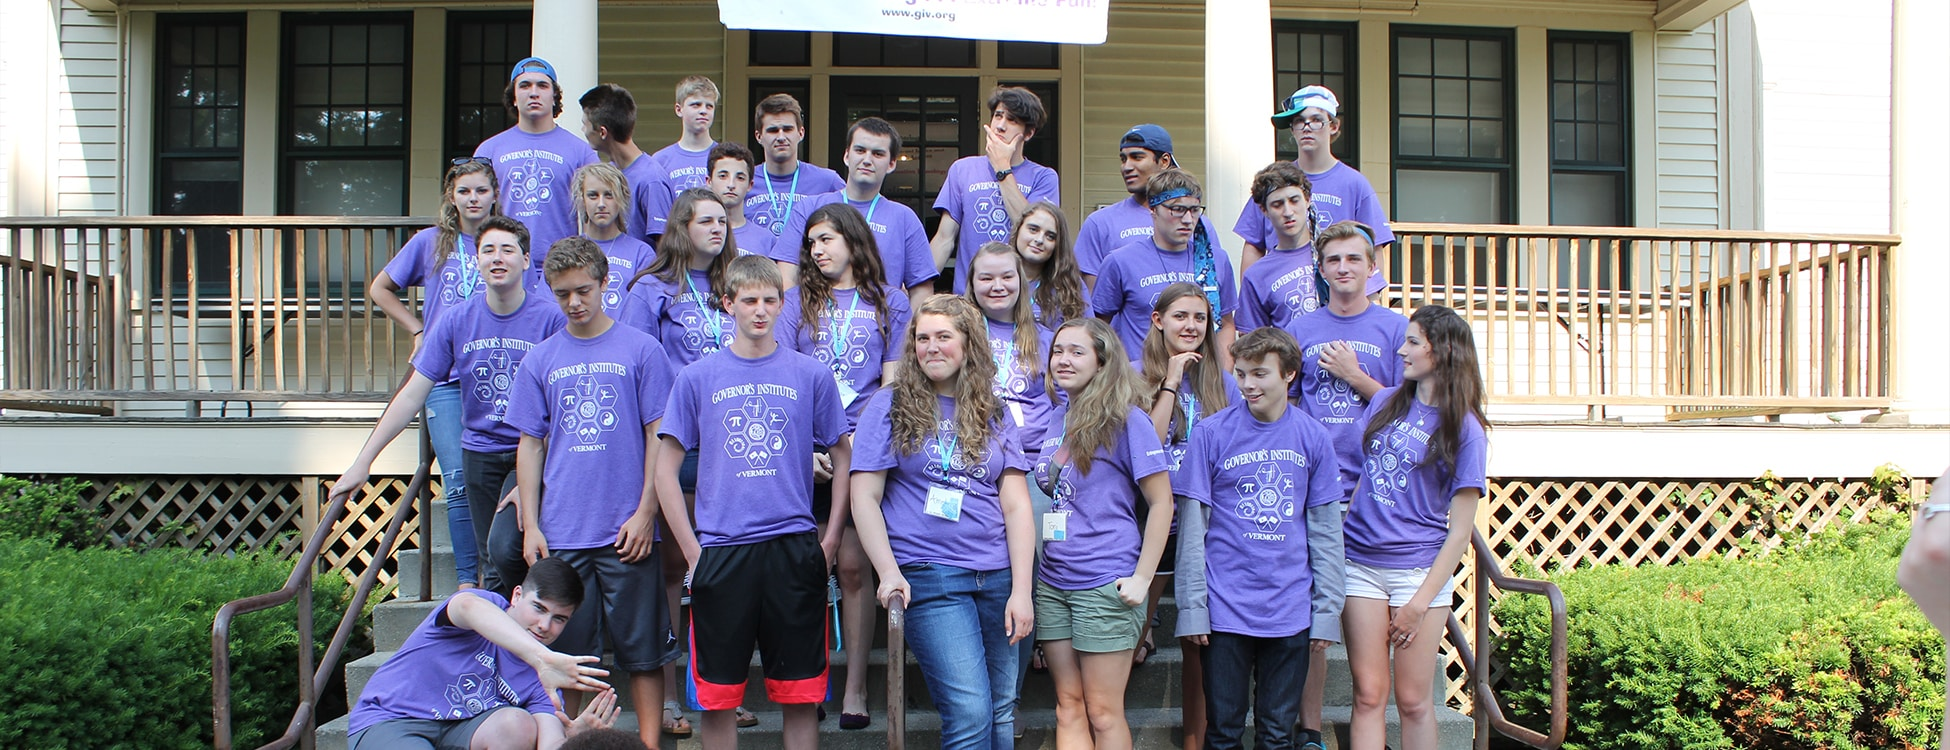 Vermont Governor's institute, entrepreneurial summer camp, male students, female students